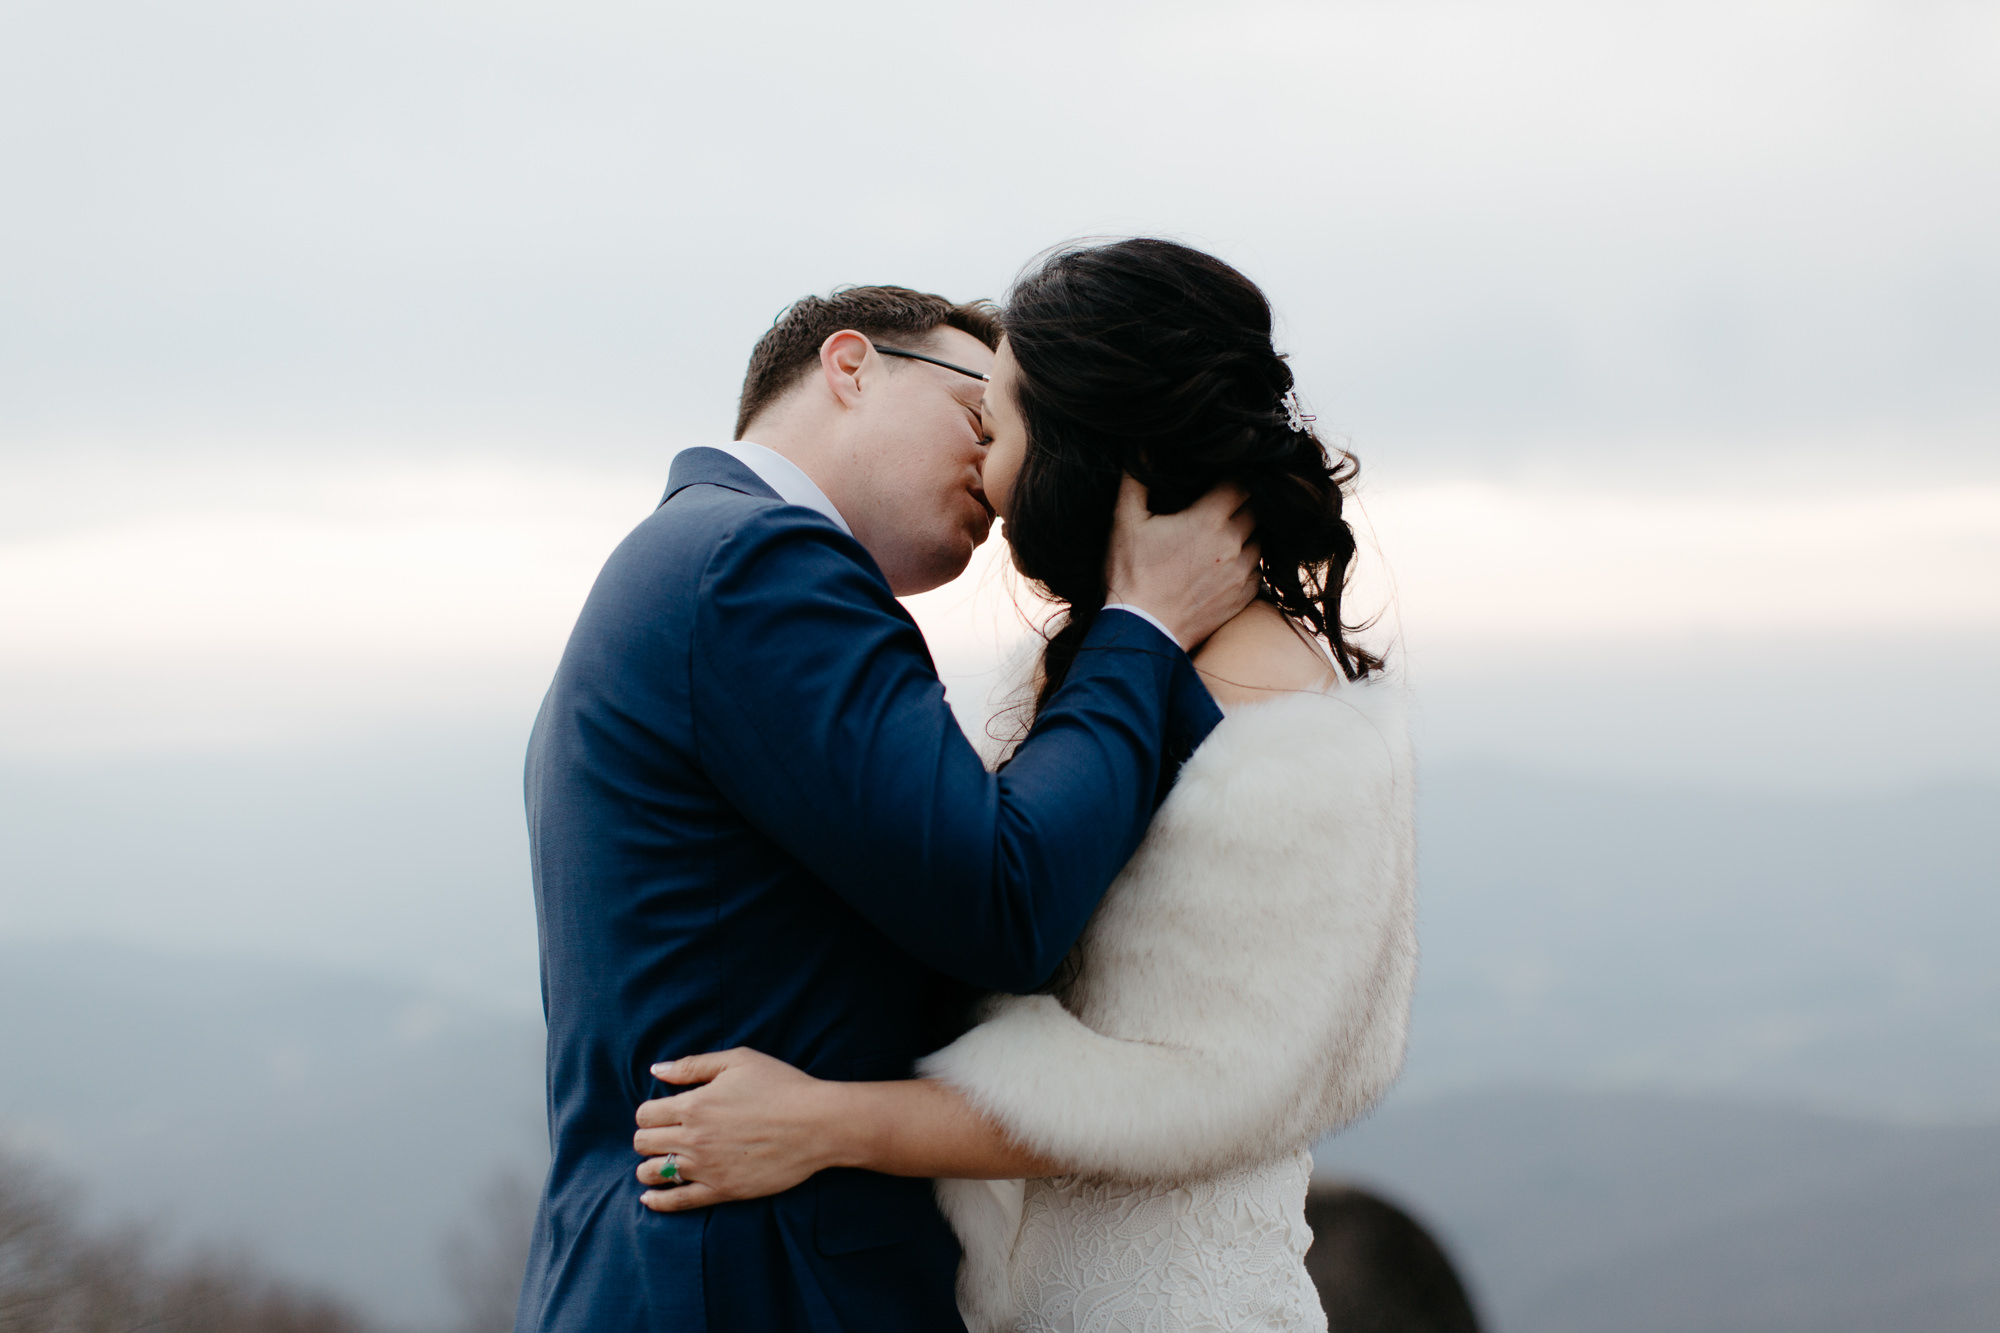 Peaks-of-Otter-Virginia-Of-Fate-and-Chaos-Elopement-Sharp-Top-33.jpg